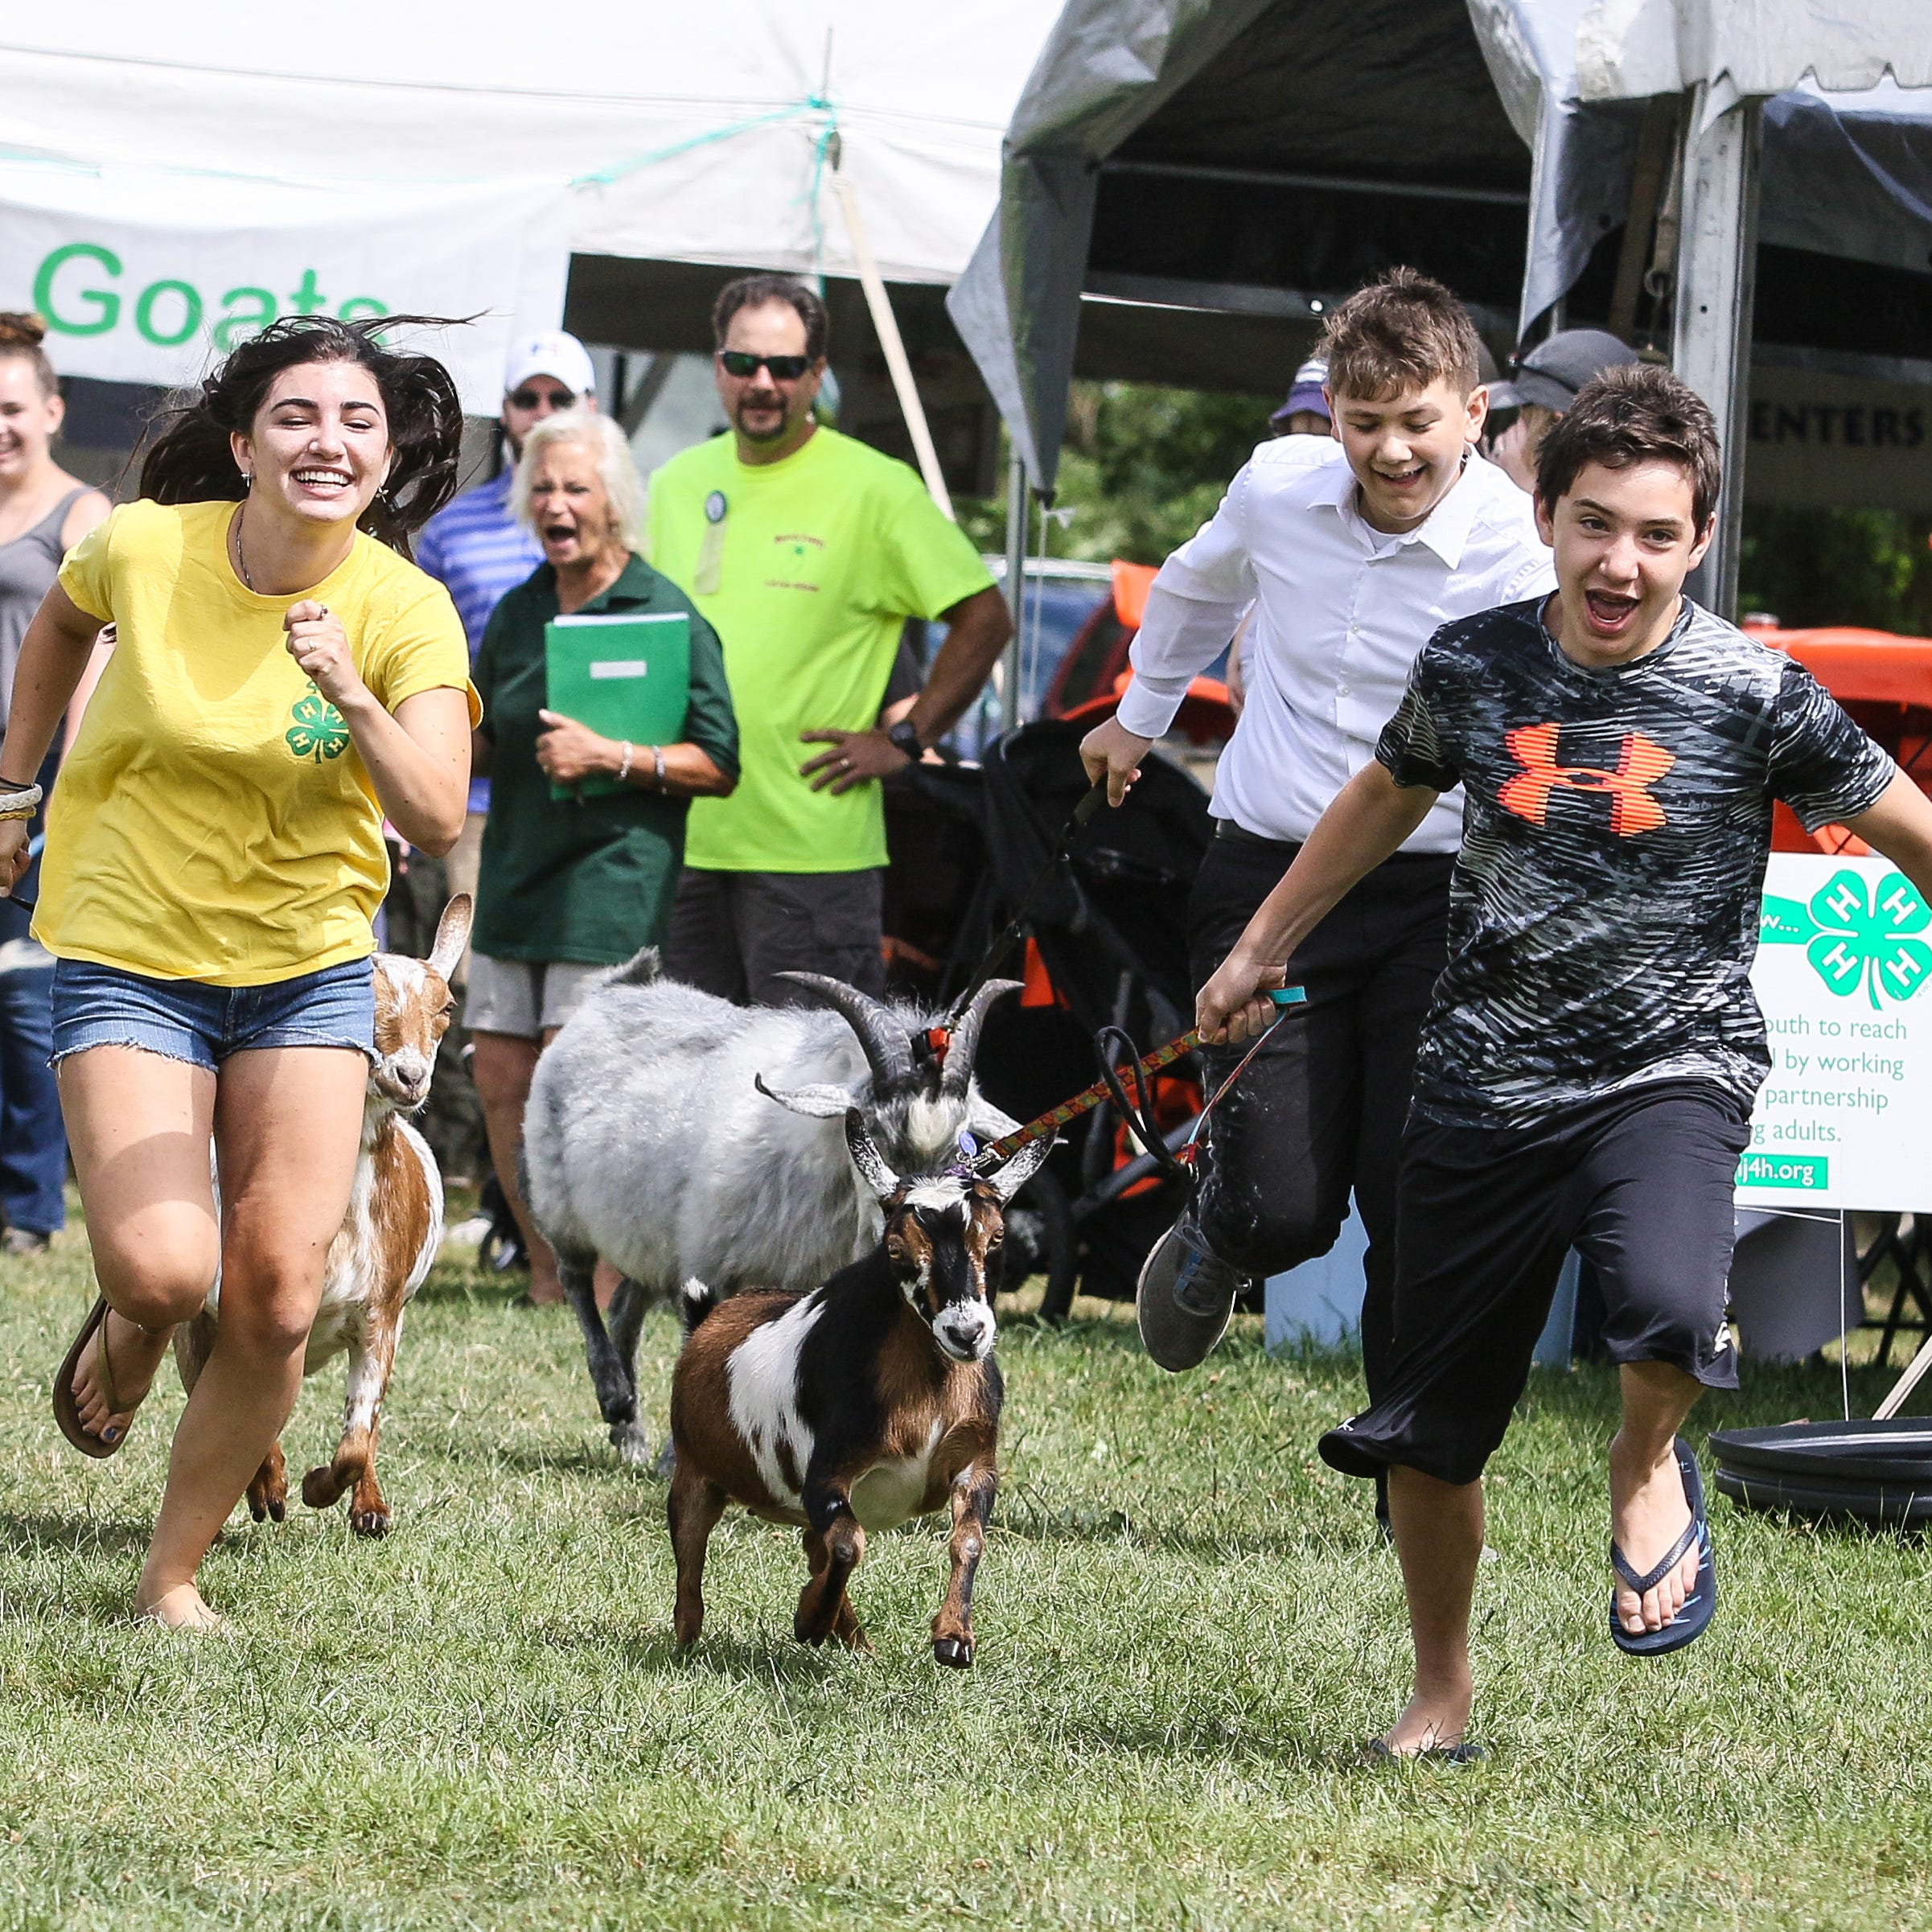 Logan Hallihan leads in first place with his goat Trixie as his sister Devon comes in second place during the 4-H Goat race at the Morris 4-H Fair in Chester on July 21, 2018.